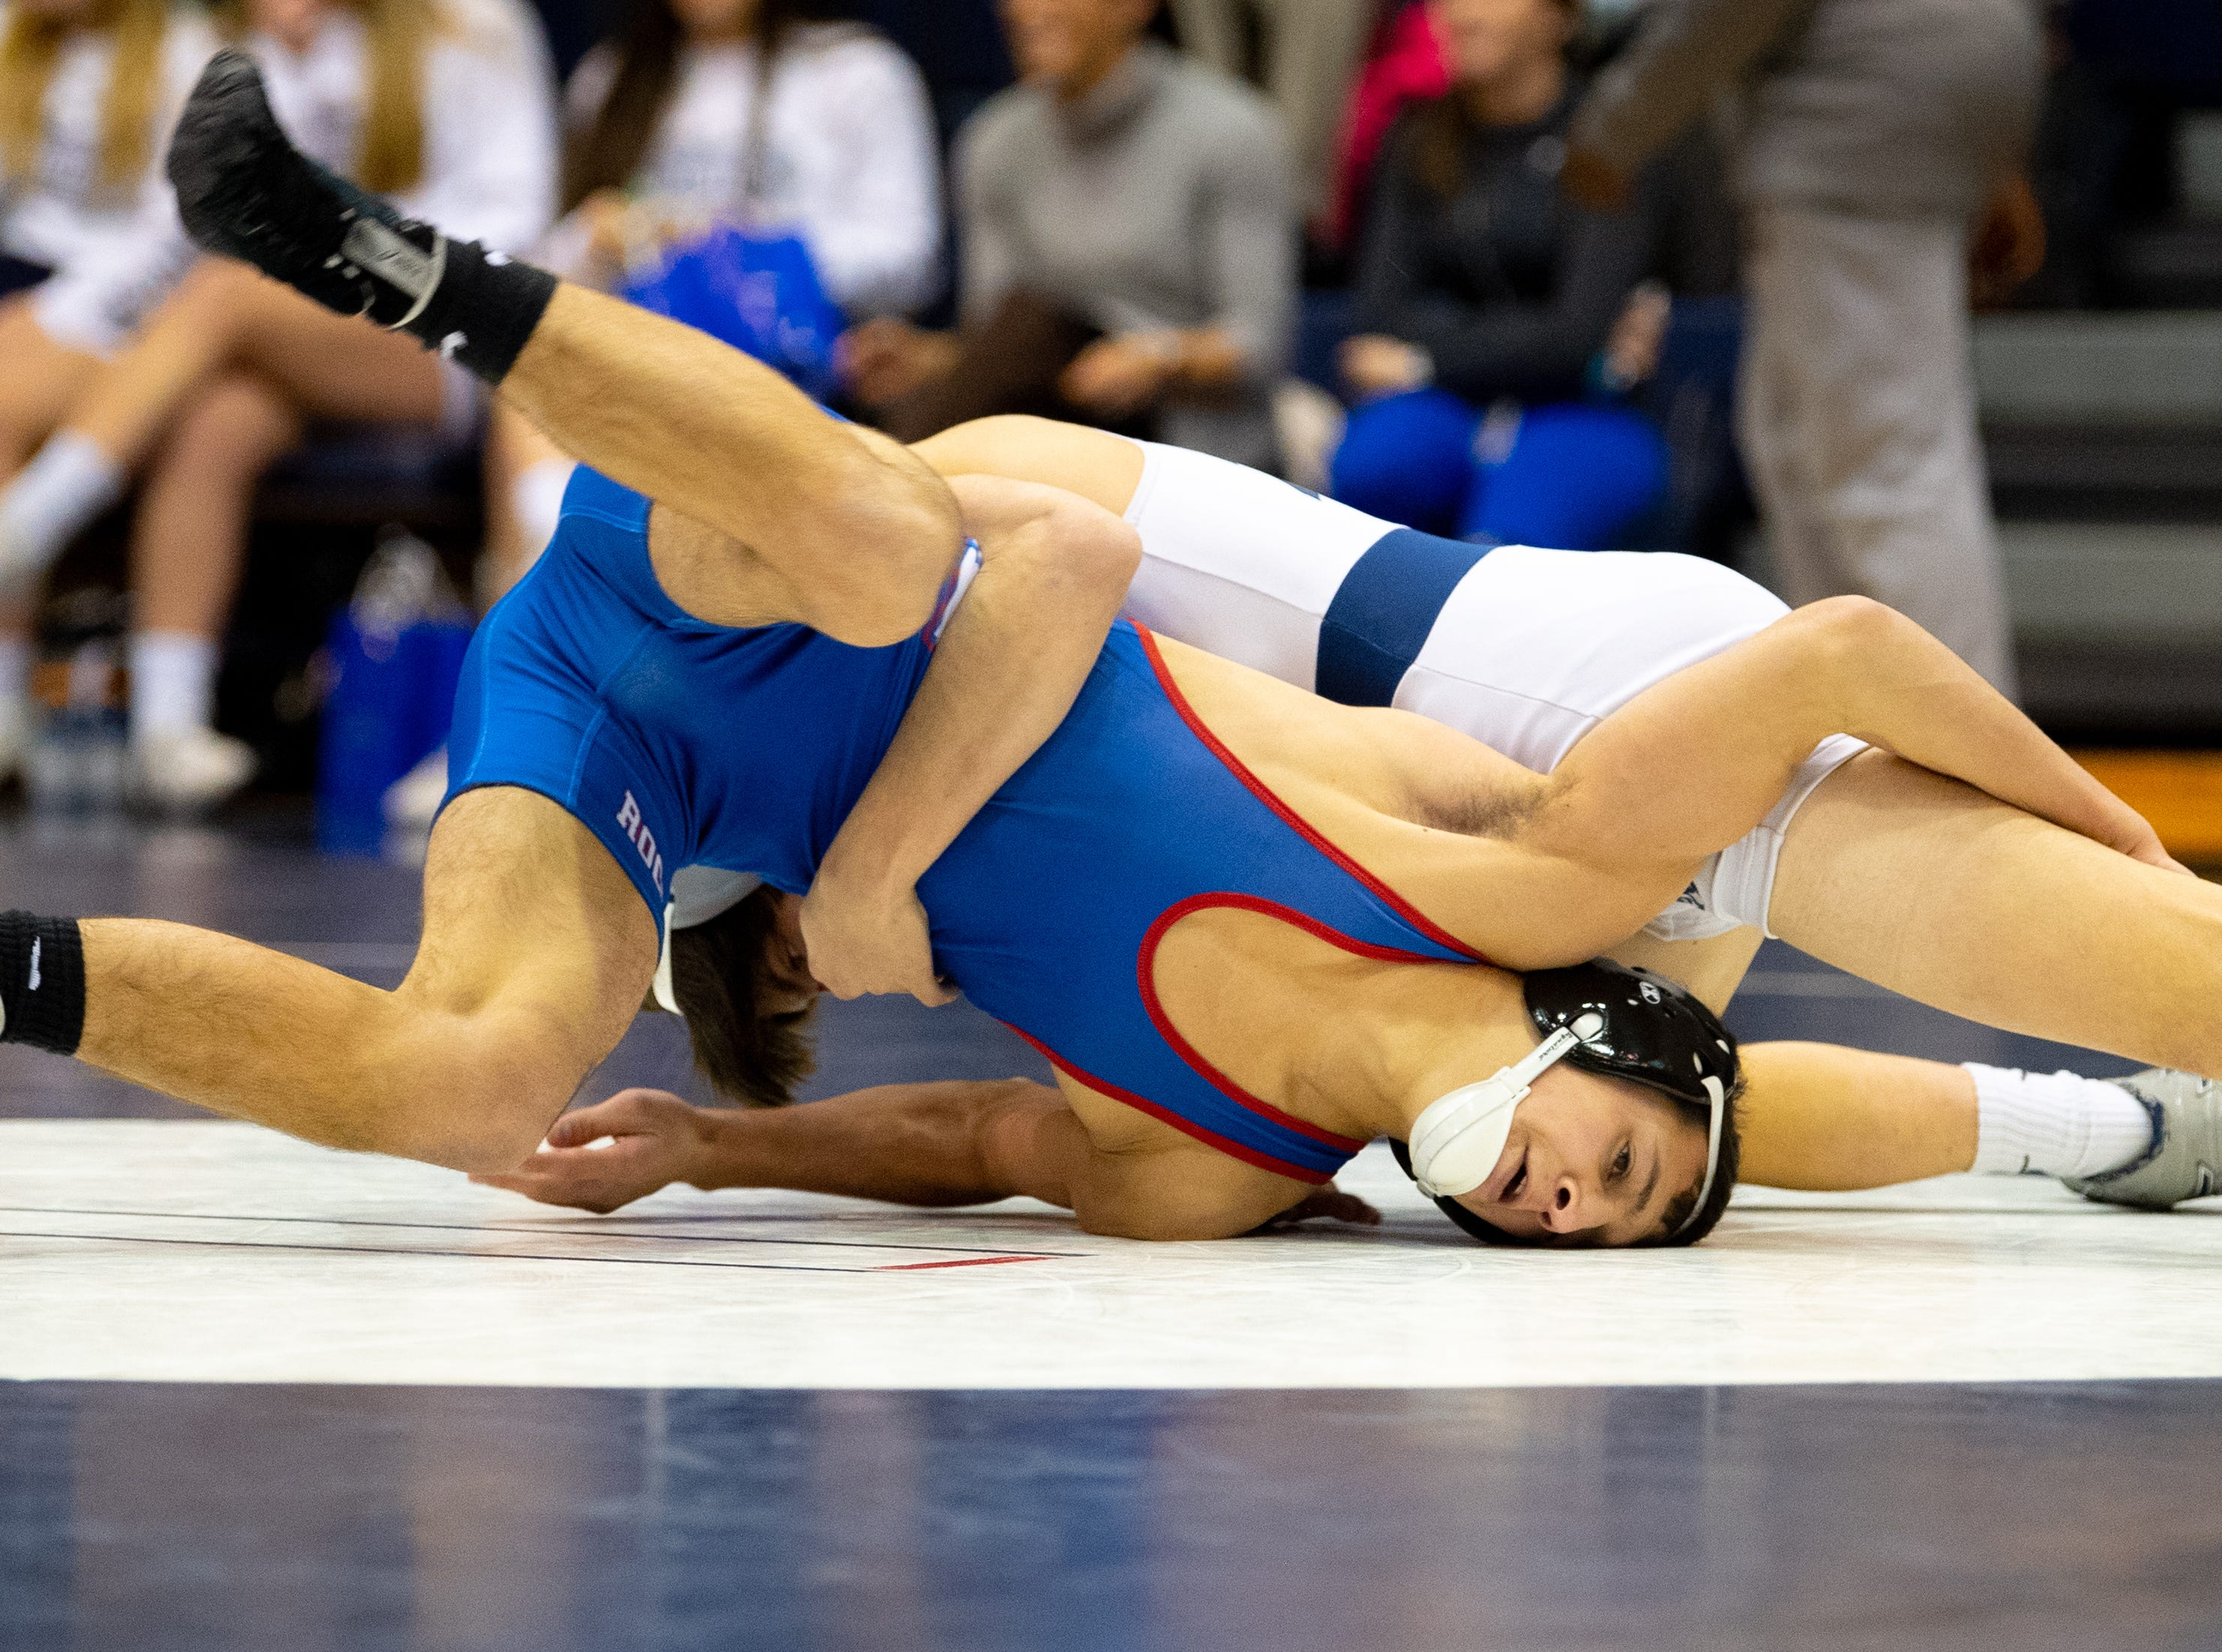 Sam Meyer of Spring Grove tries to break free during the wrestling dual meet between Dallastown and Spring Grove at Dallastown Area High School, January 17, 2019. The Wildcats defeated the Rockets 46-24.